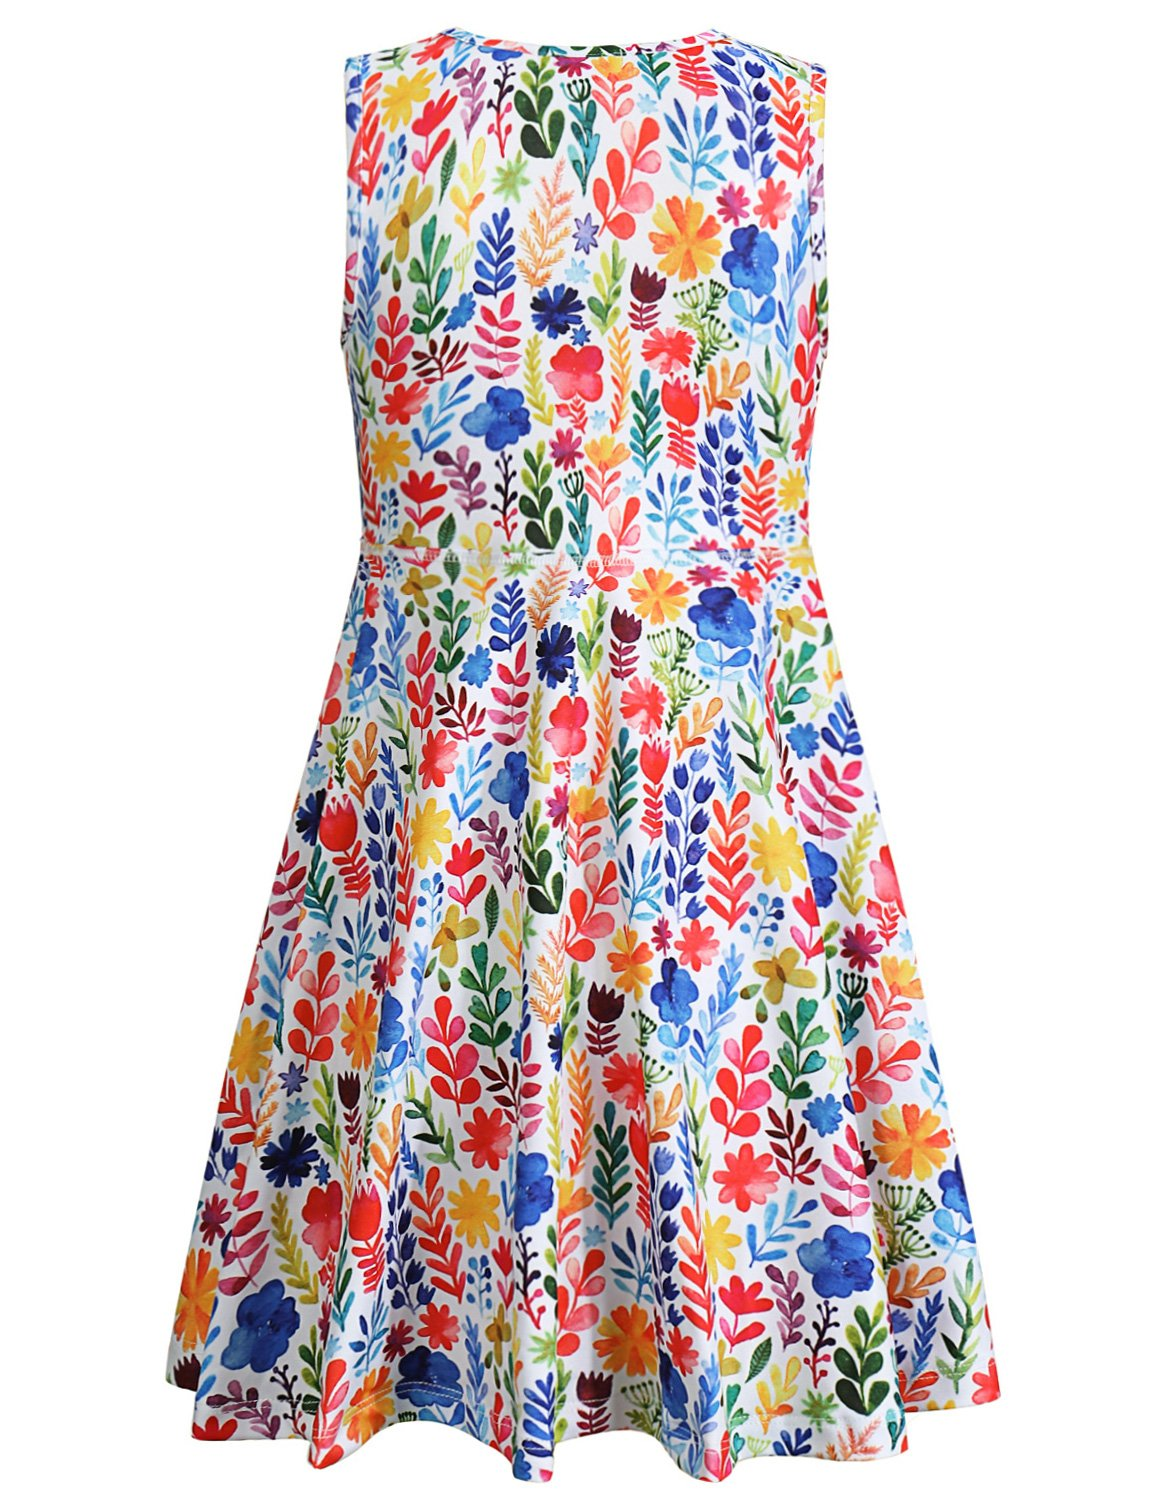 Jxstar Girl Casual Dress Flower Summer Floral Printed Sleeveless Holiday Little by Jxstar (Image #2)